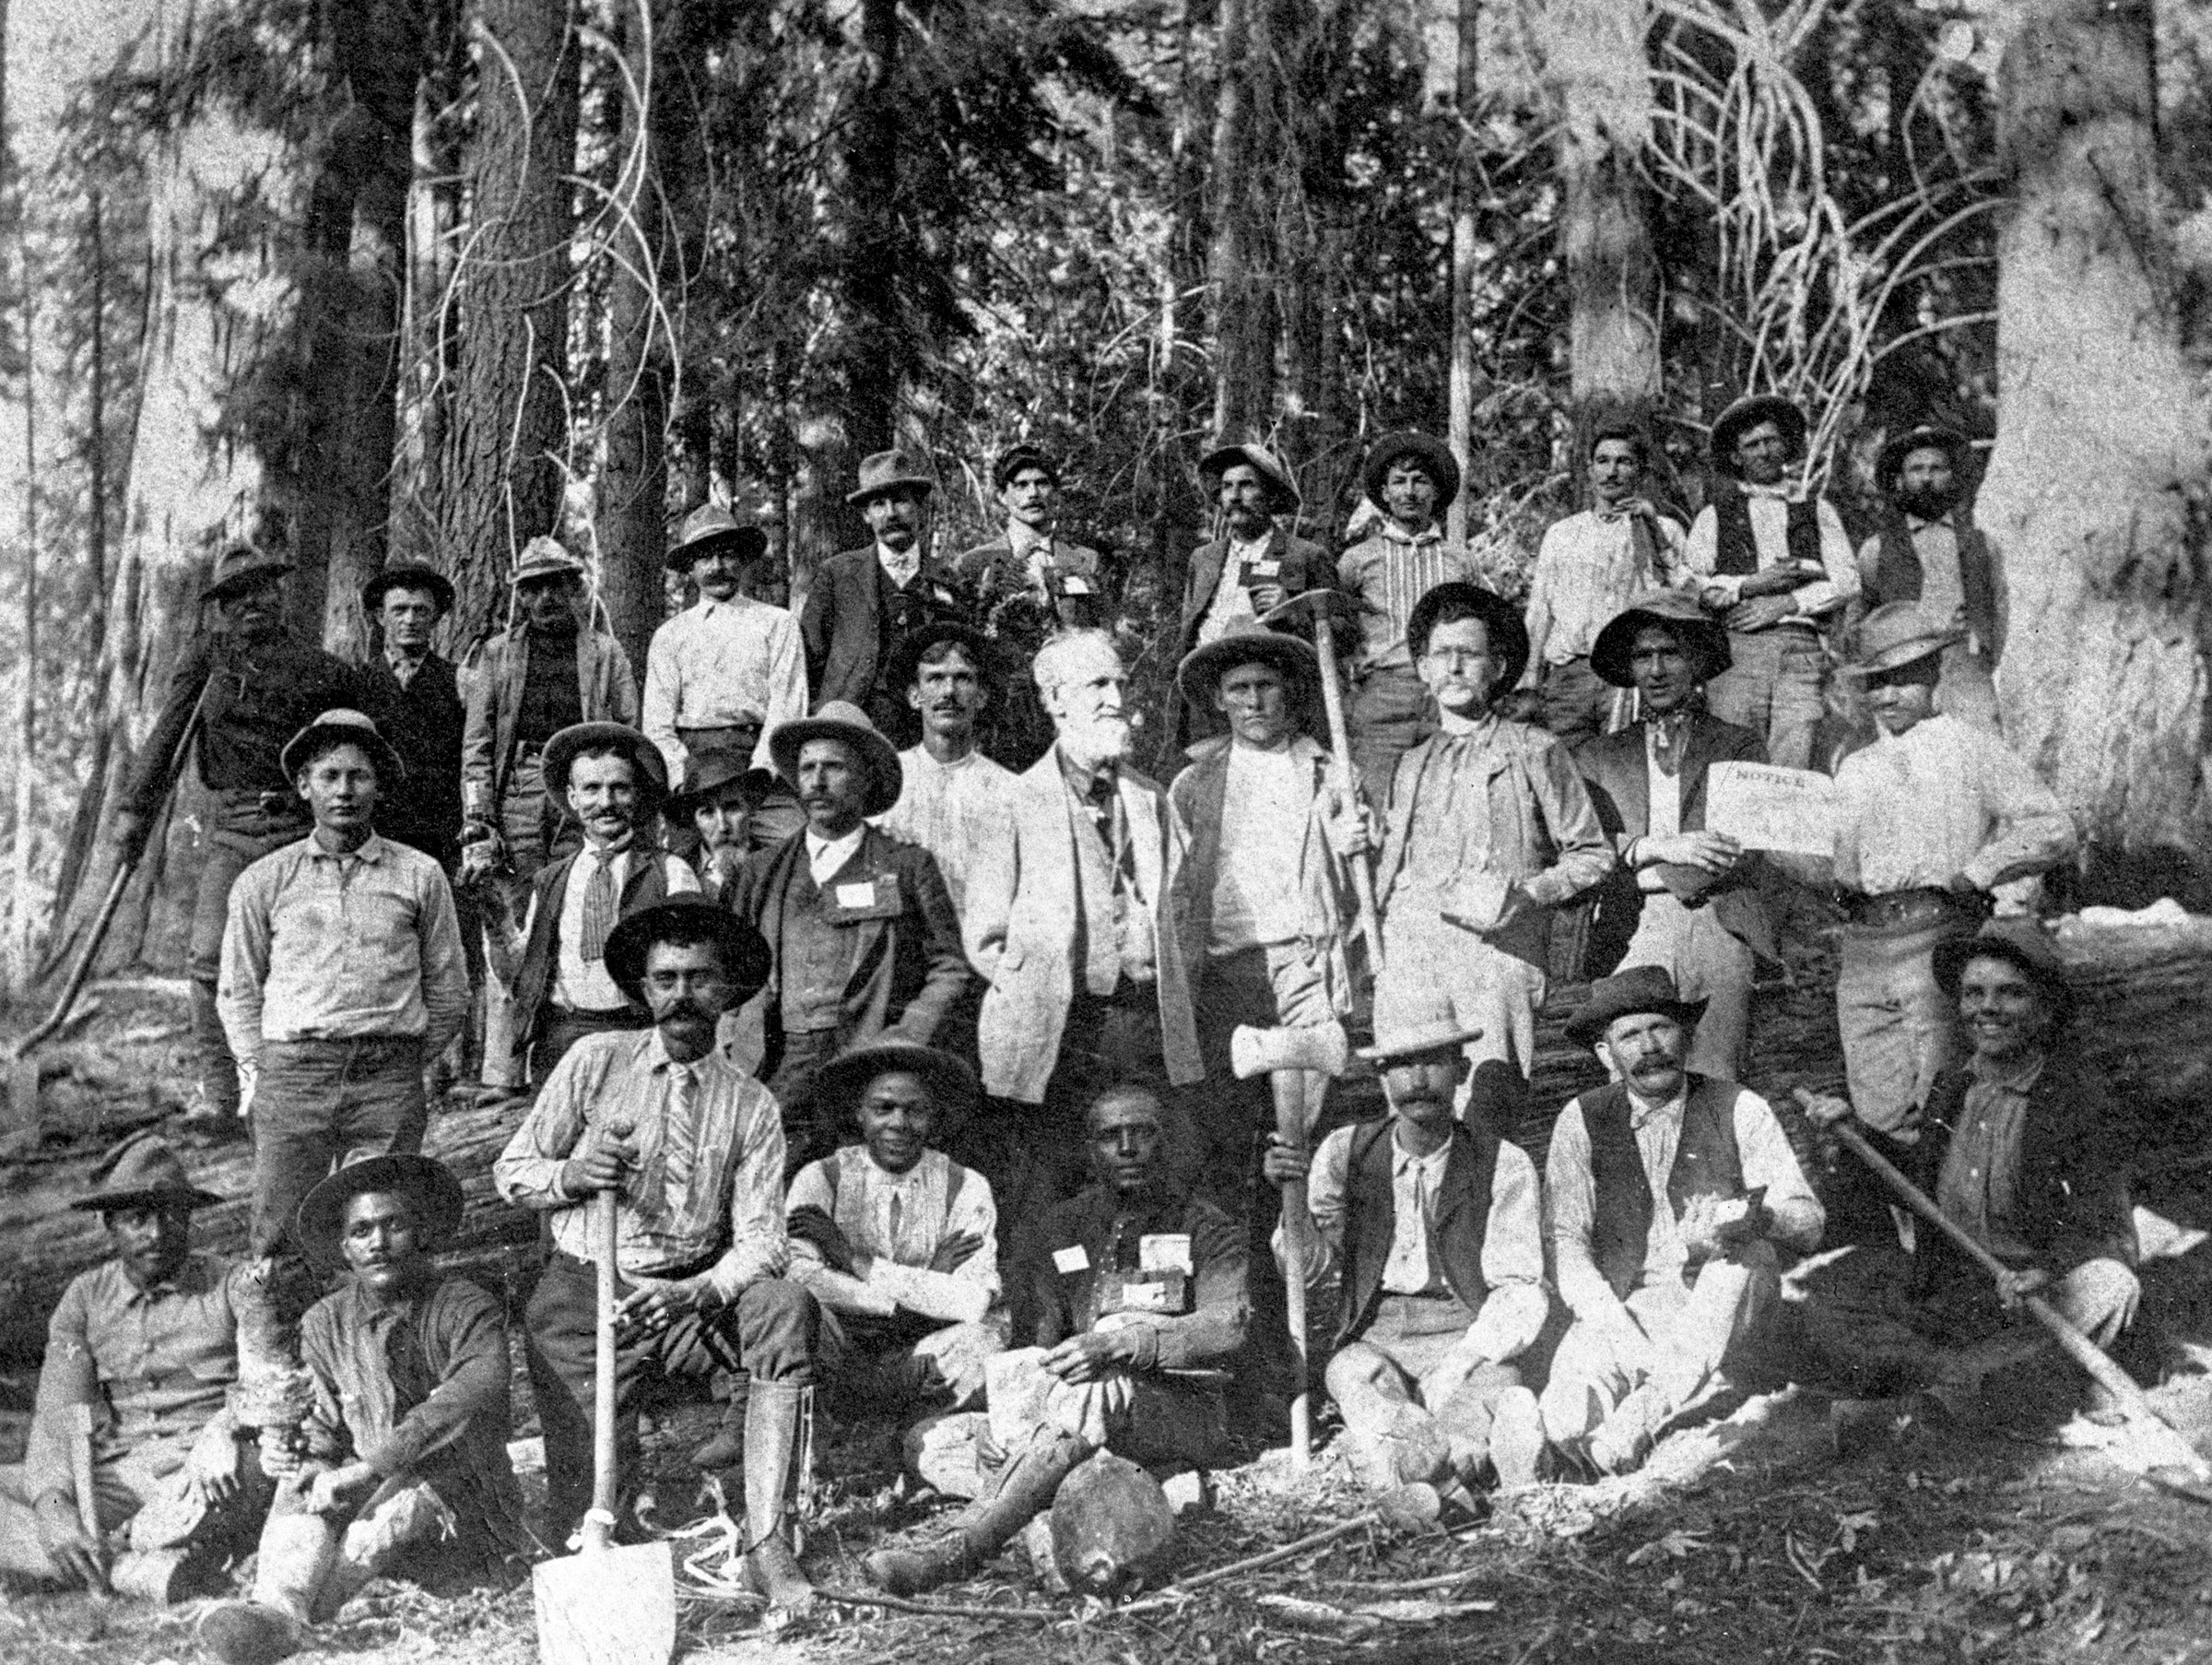 Young, bottom center, and road construction crew upon completion of road into Giant Forest in Sequoia National Park, 1903. National Park Service